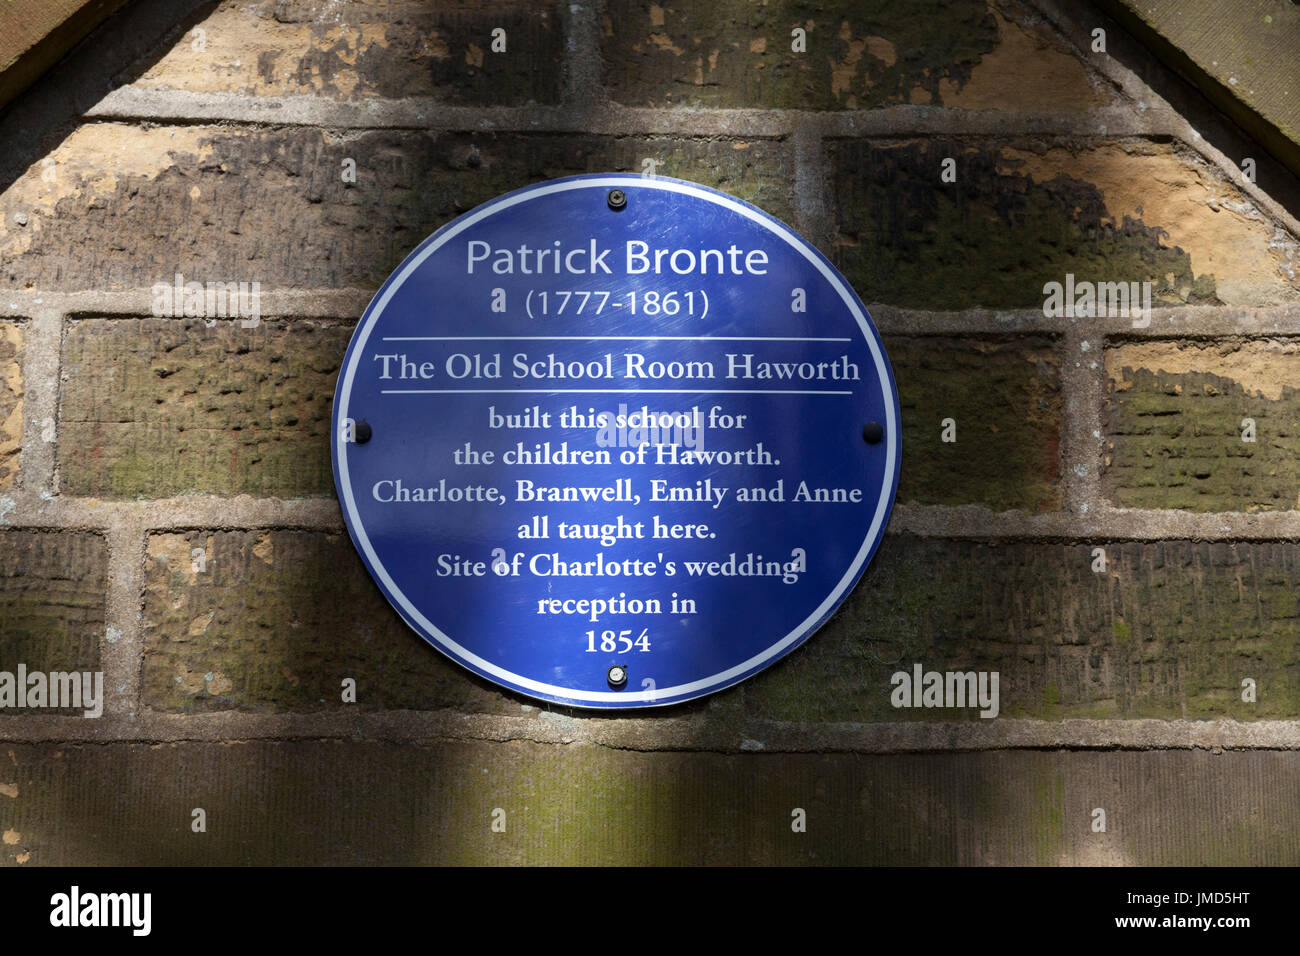 Plaque for Patrick Brontë on the Old School House, Haworth, West Yorkshire - Stock Image